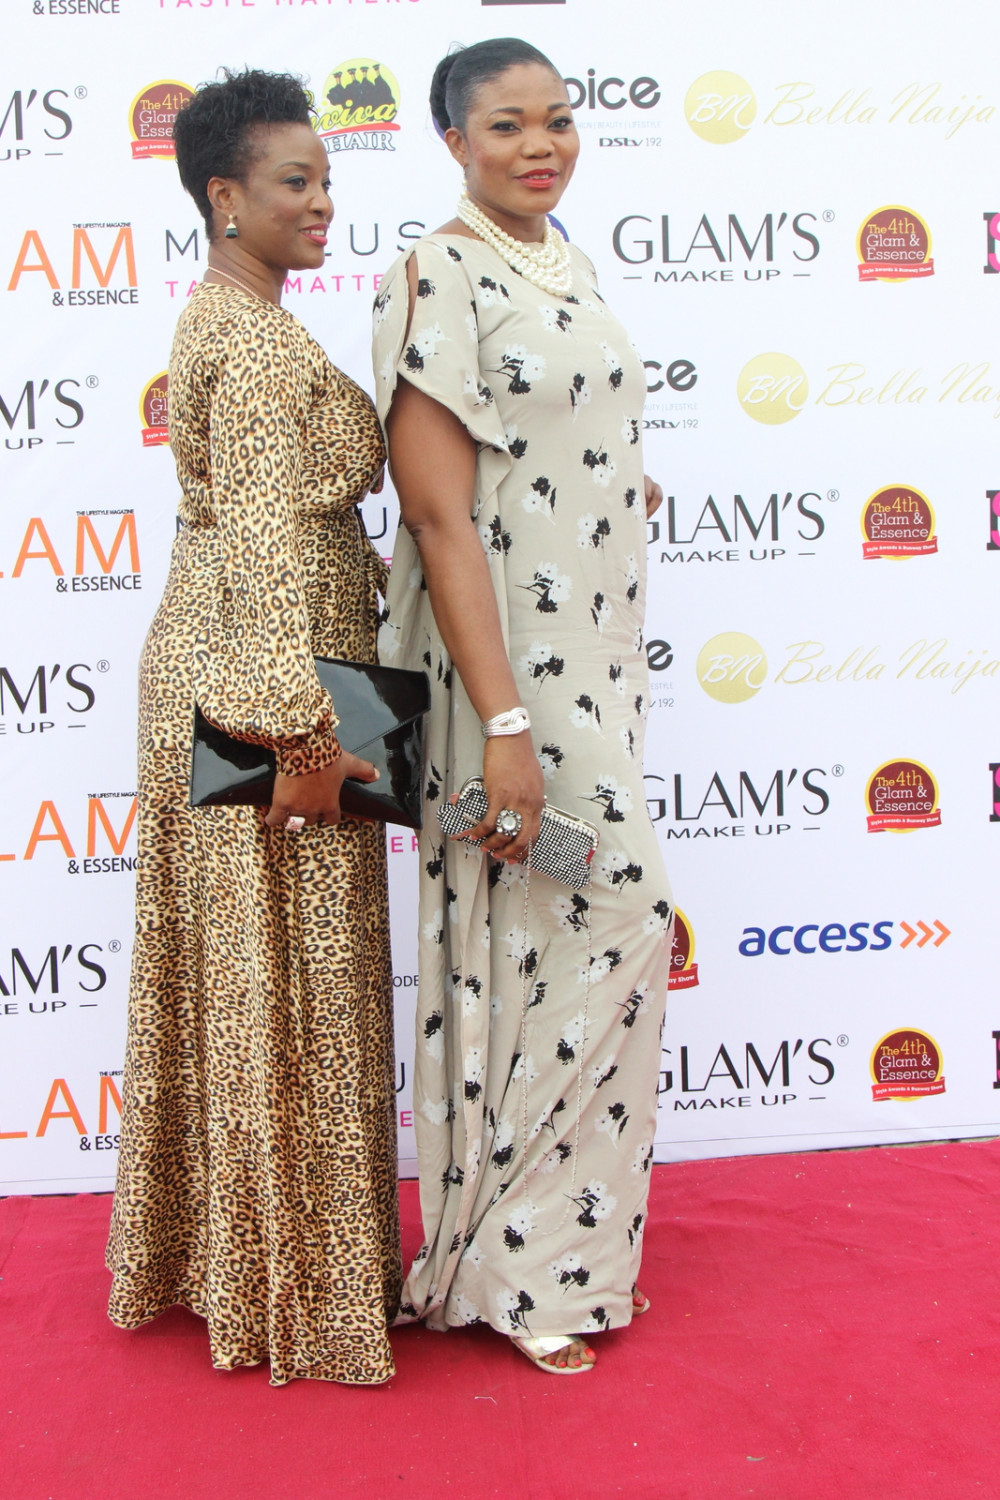 Gladys Adams and Meg Alabi